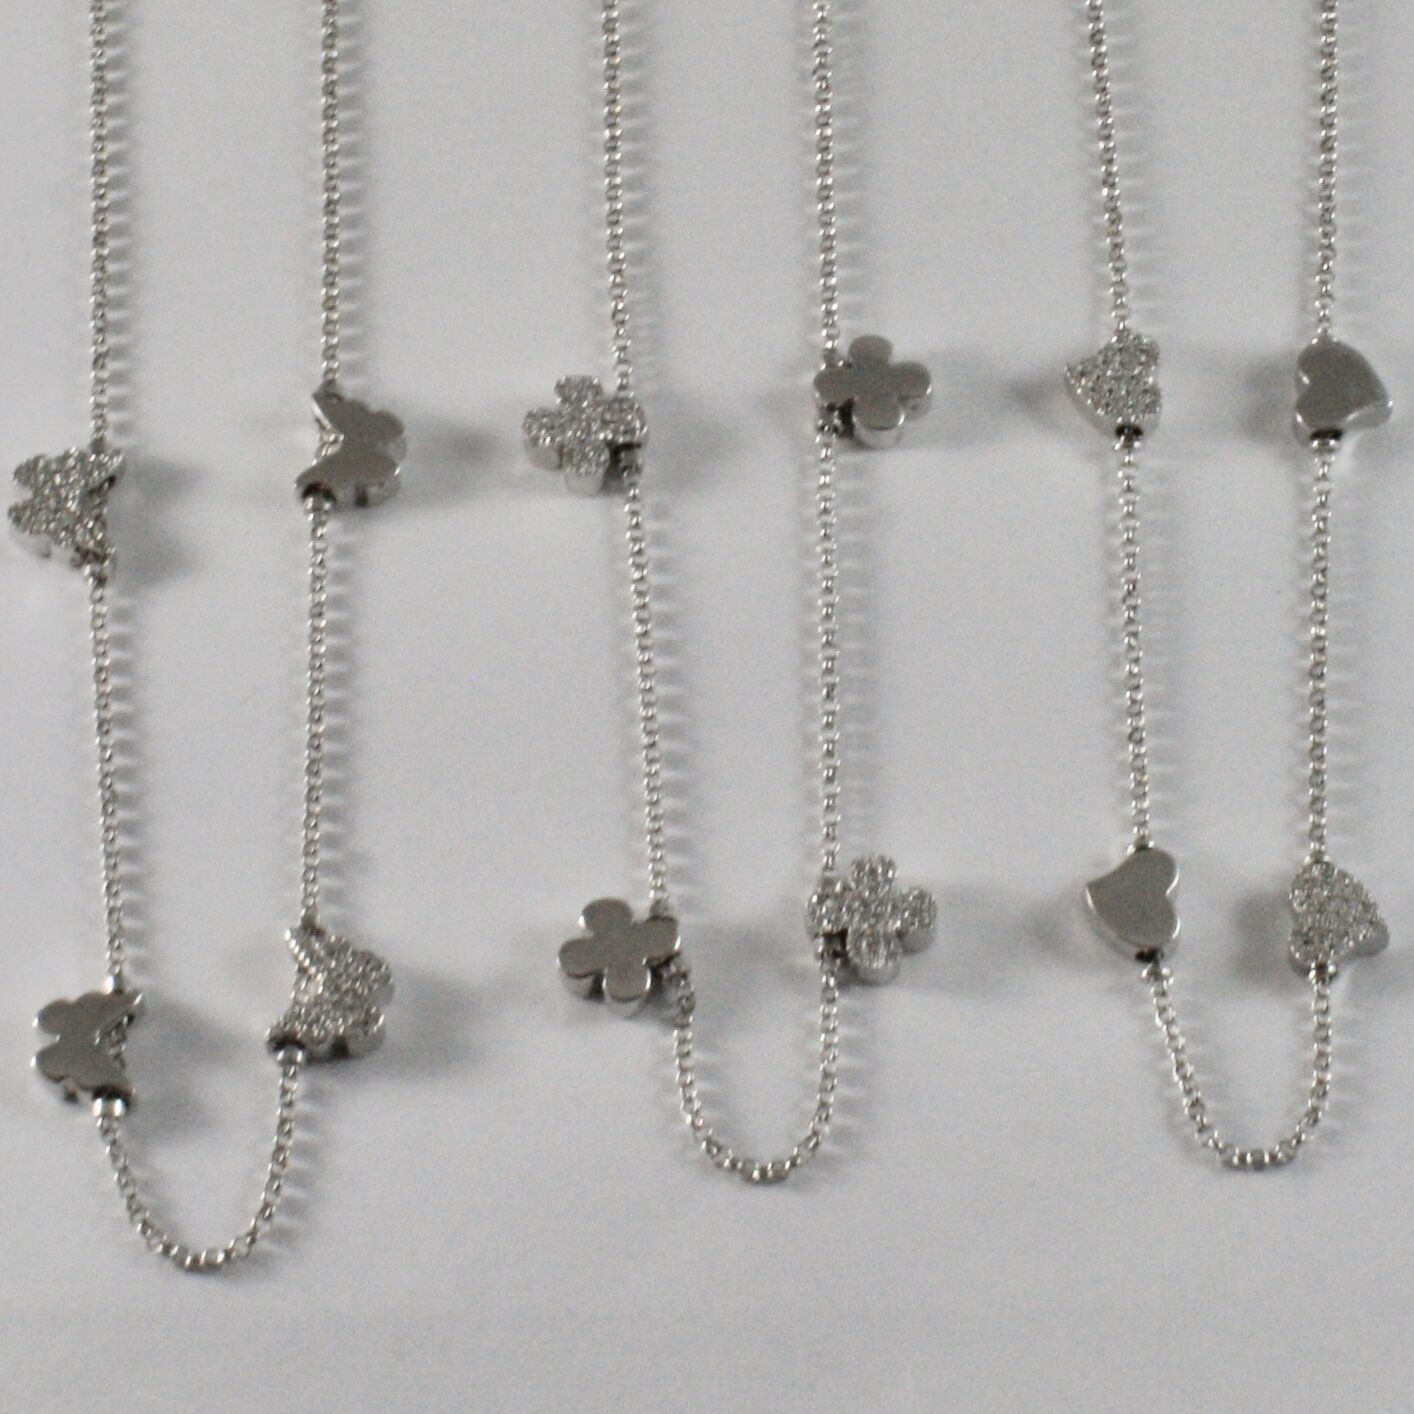 925 Sterling Silver Necklace Jack&co with Four-Leaf Clover Heart & Butterfly